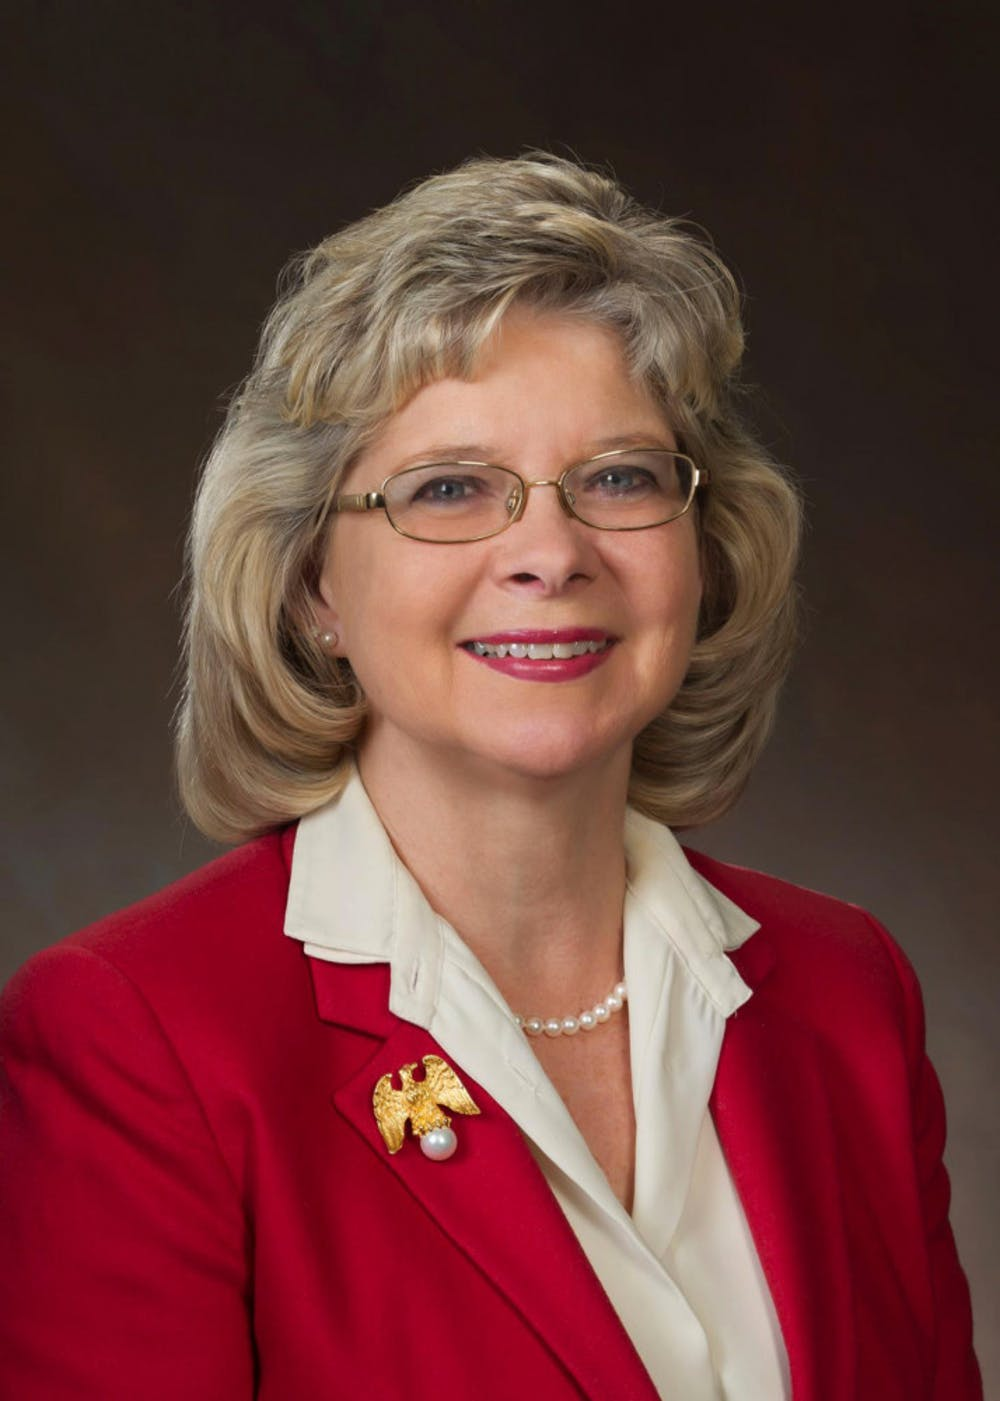 <p>Jean Calderwood, a County Commission candidate, plans to shift the commission's focus to rural areas, which are often ignored, she said.</p>